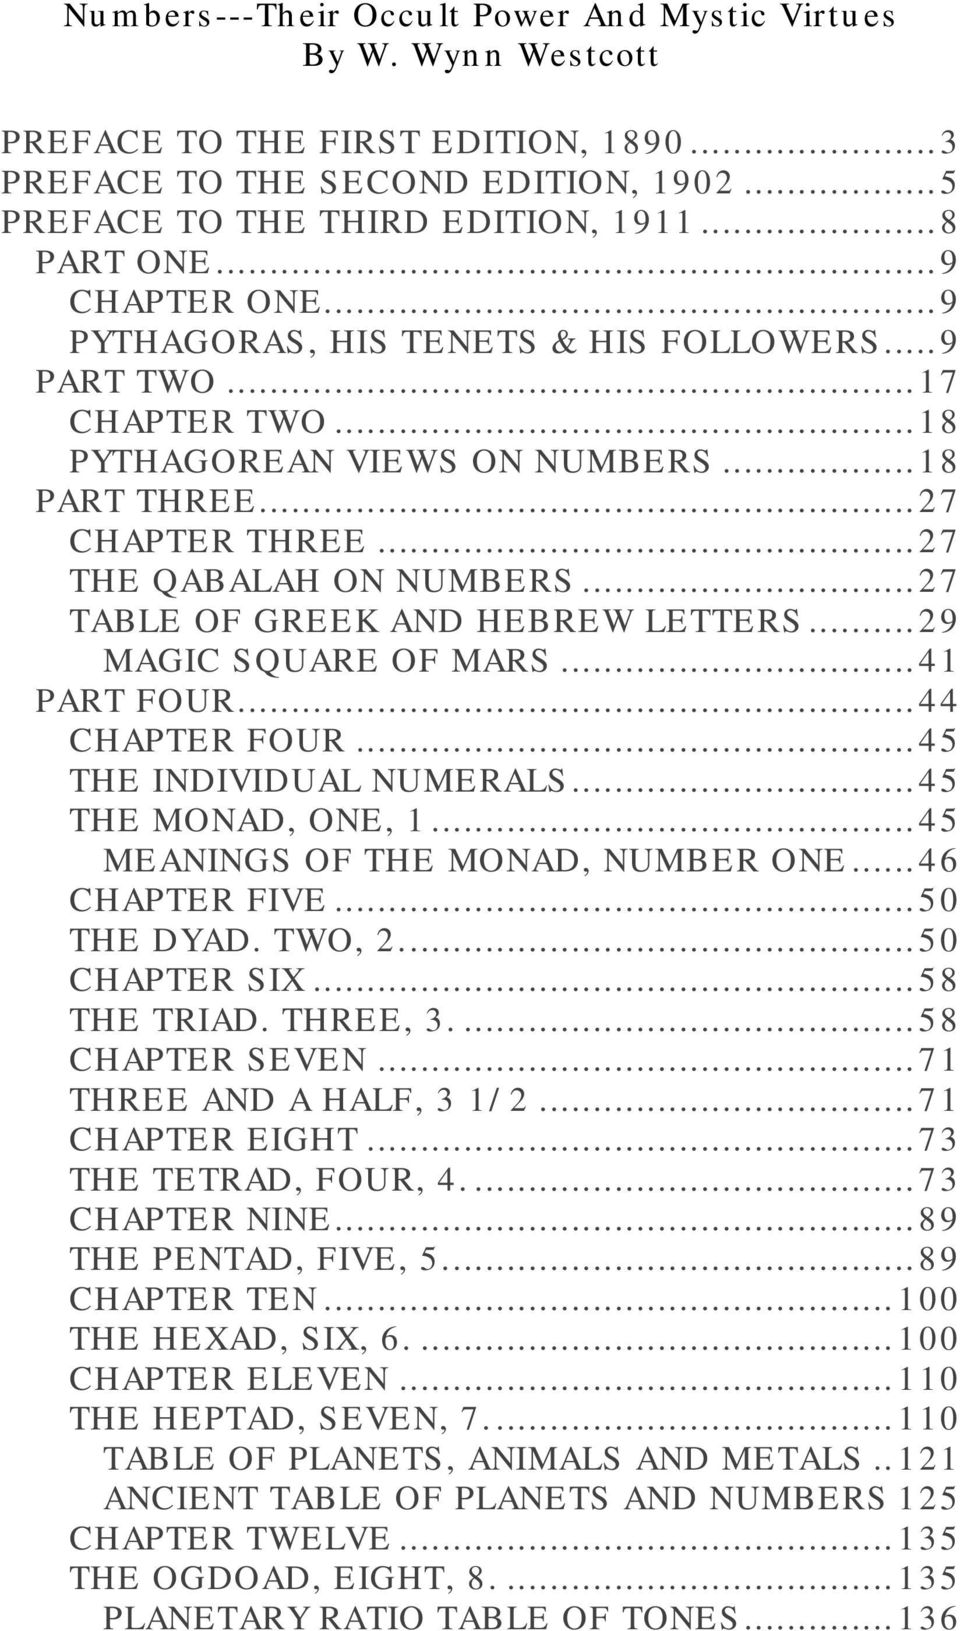 .. 41 PART FOUR... 44 CHAPTER FOUR... 45 THE INDIVIDUAL NUMERALS... 45 THE MONAD, ONE, 1... 45 MEANINGS OF THE MONAD, NUMBER ONE... 46 CHAPTER FIVE... 50 THE DYAD. TWO, 2... 50 CHAPTER SIX.